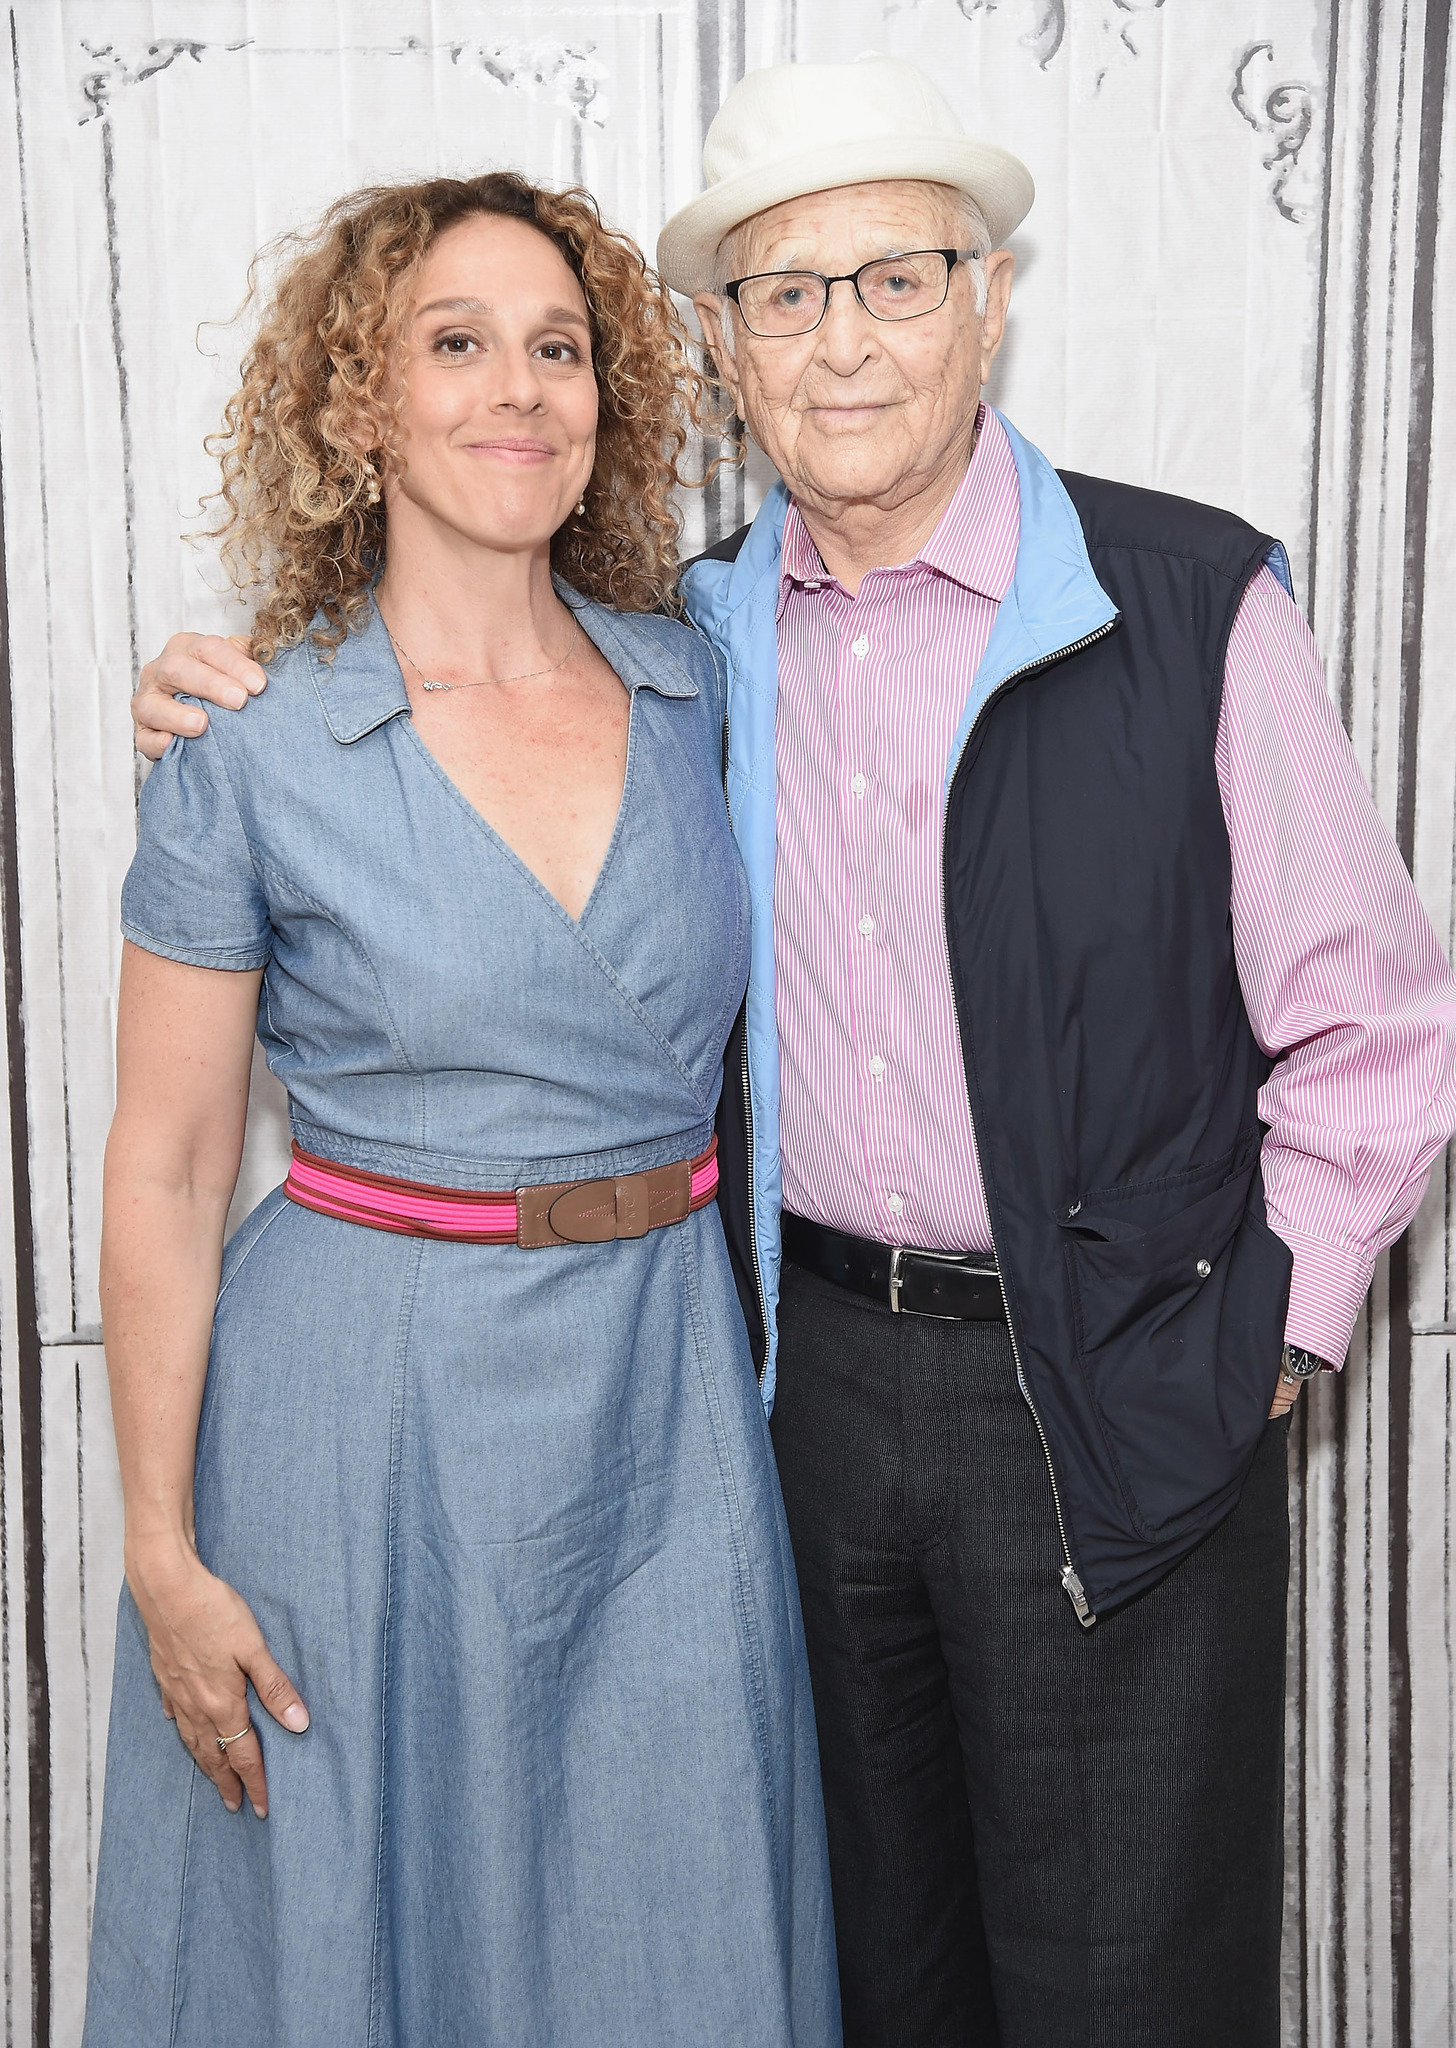 Norman Lear and Rachel Grady at an event for Norman Lear: Just Another Version of You (2016)